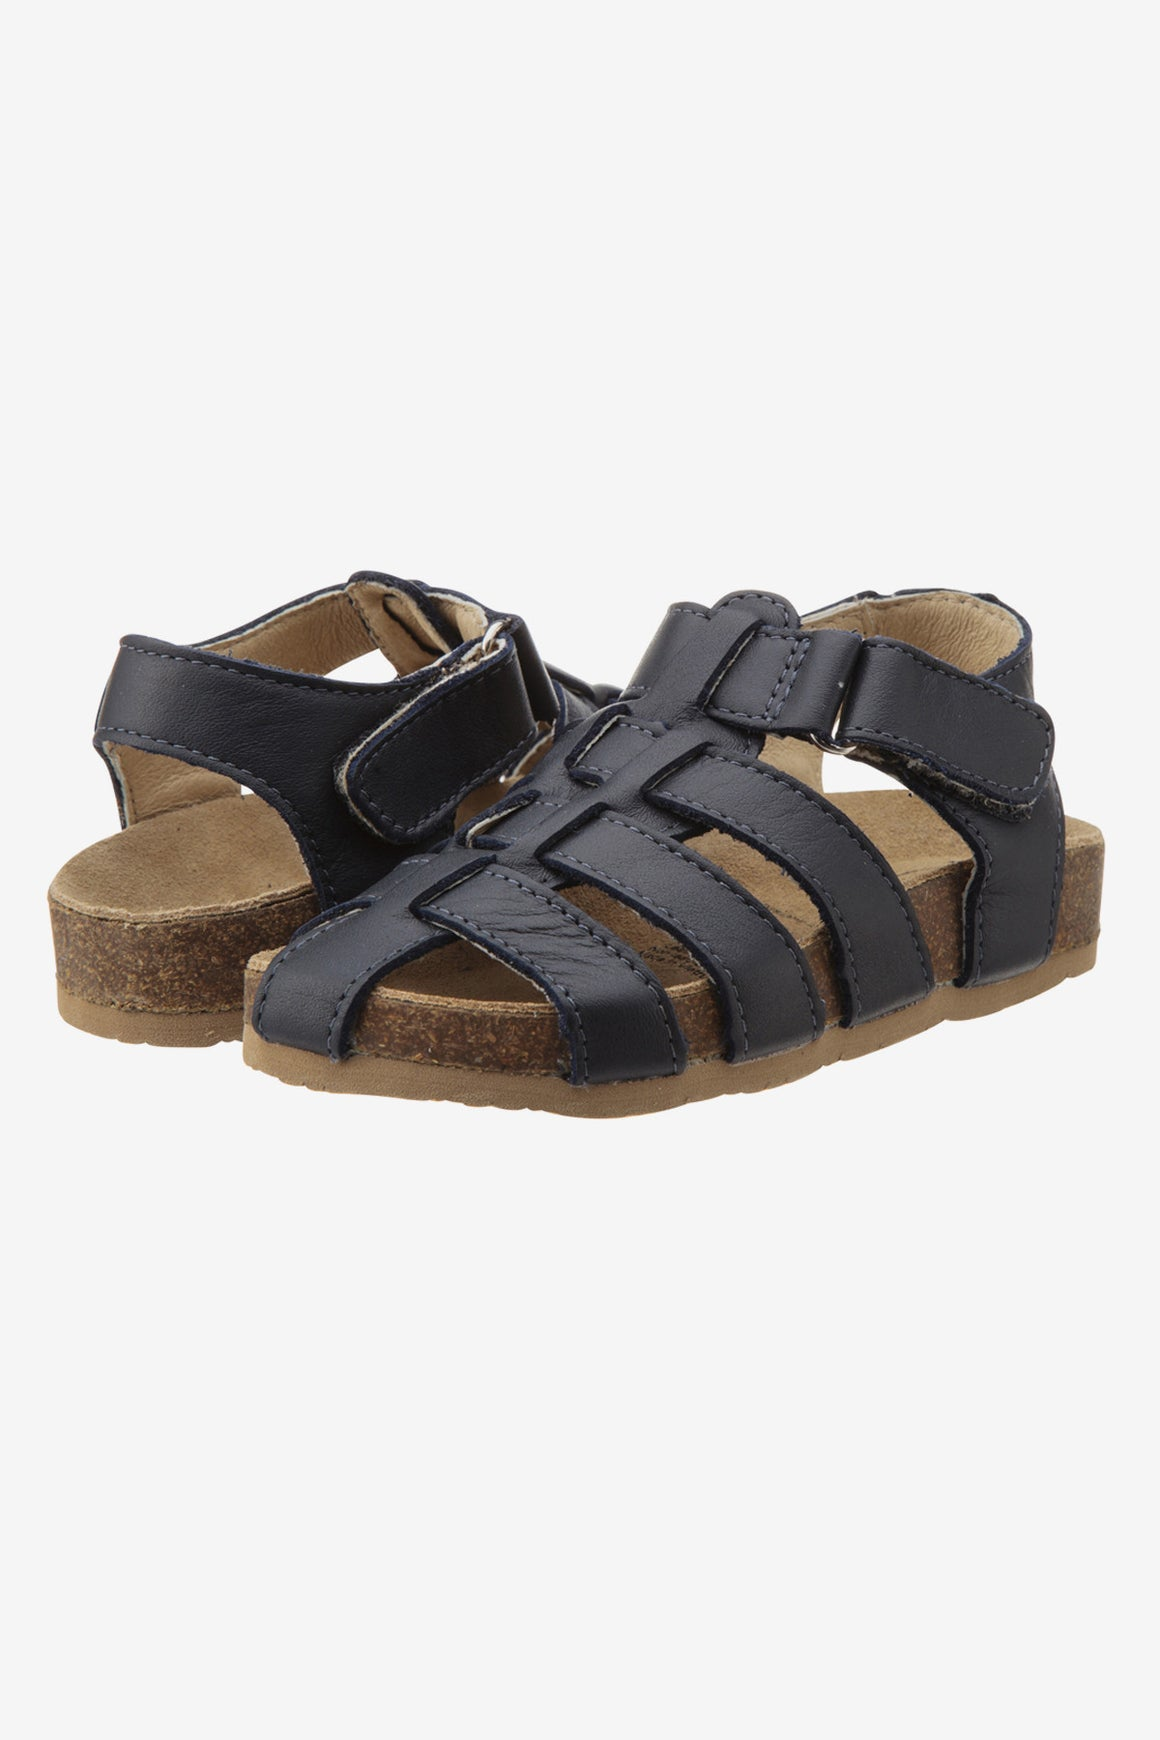 Old Soles Roadstar Sandal - Navy